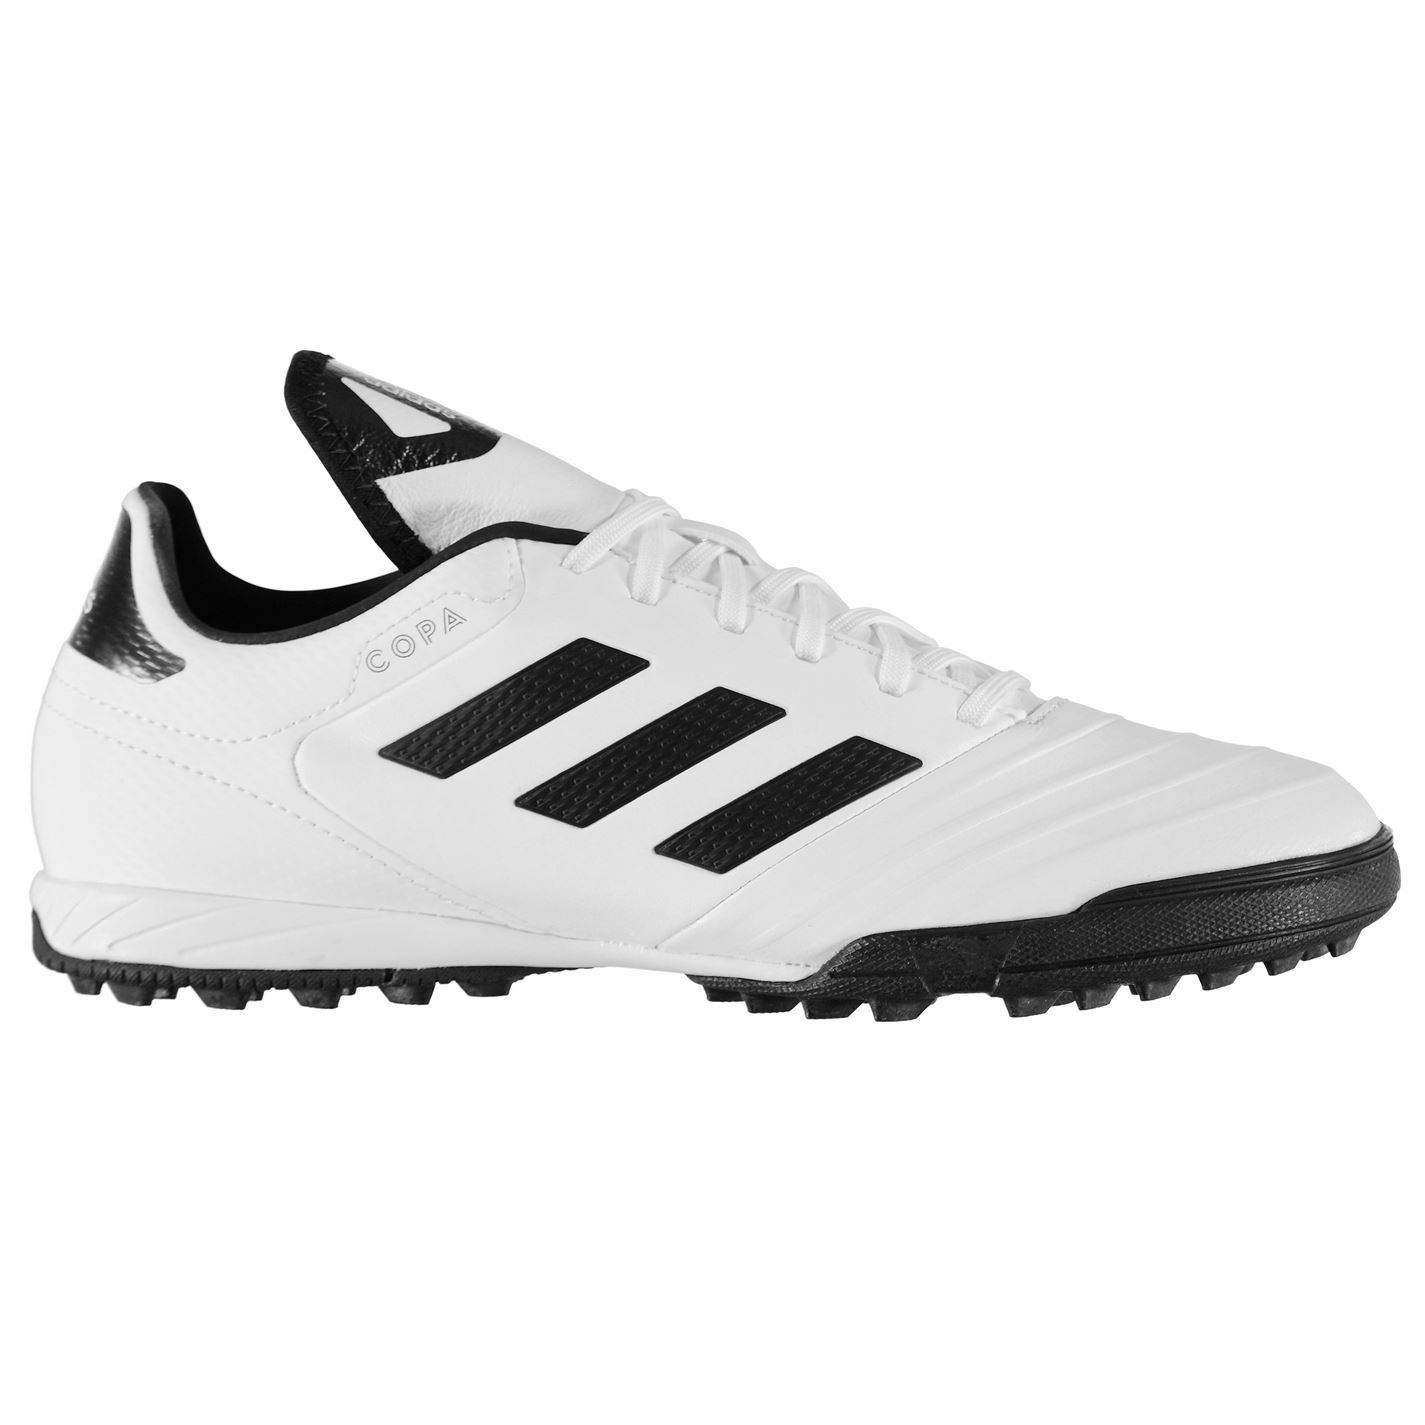 meet 1fae9 574ad ... adidas Copa Tango 18.3 Astro Turf Football Trainers Mens White Soccer  Shoes ...